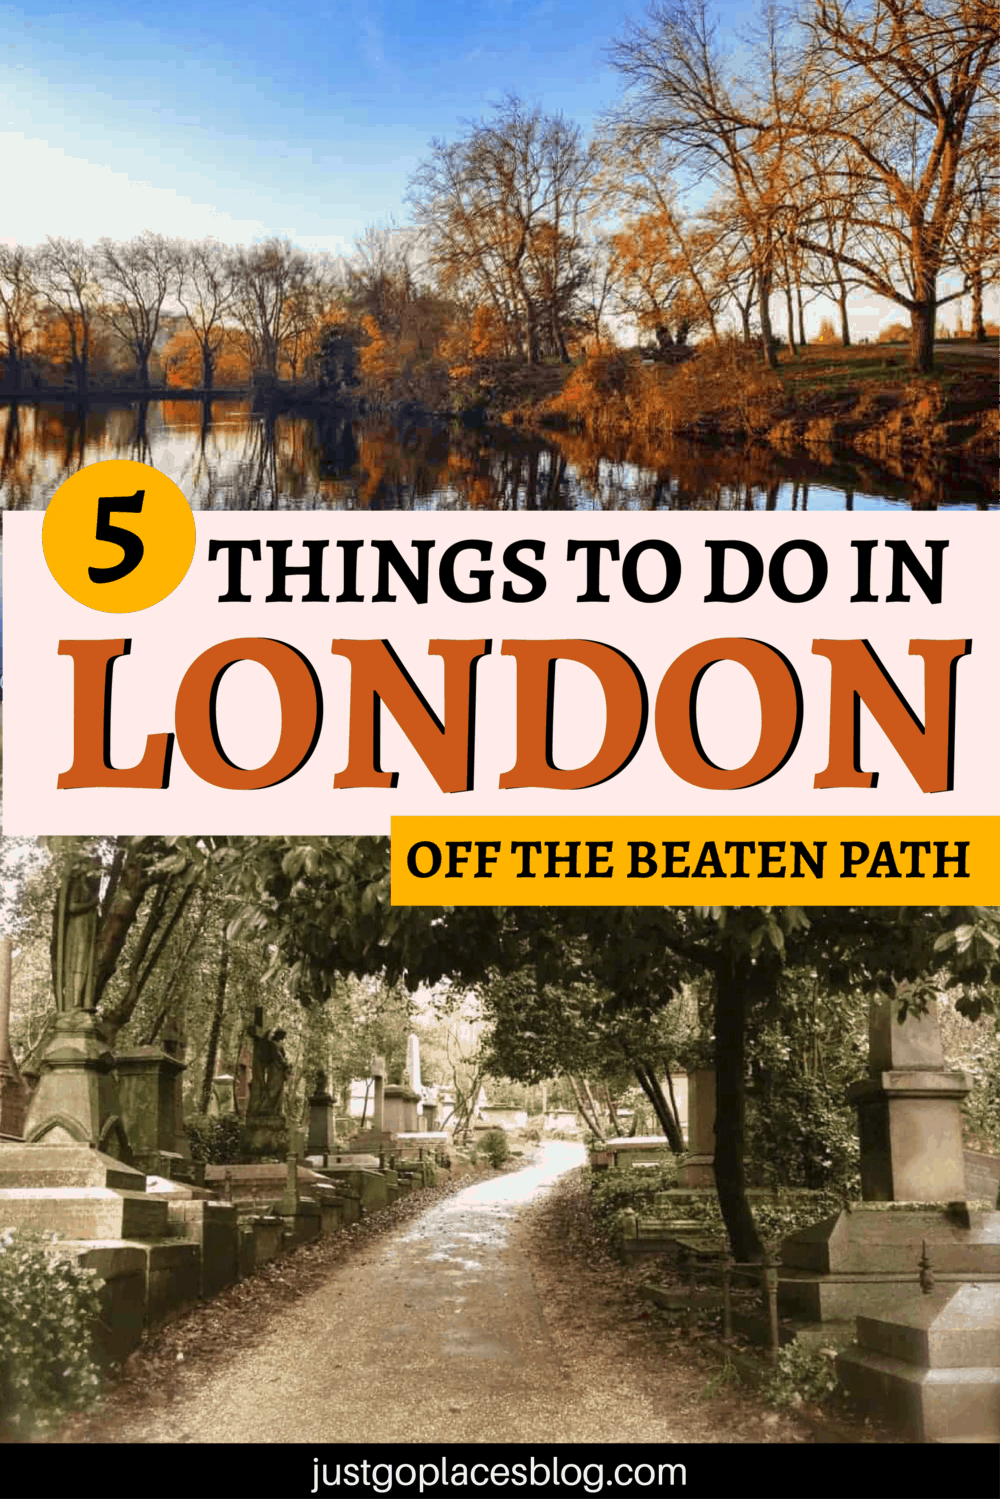 5 things to do in London off the beaten path